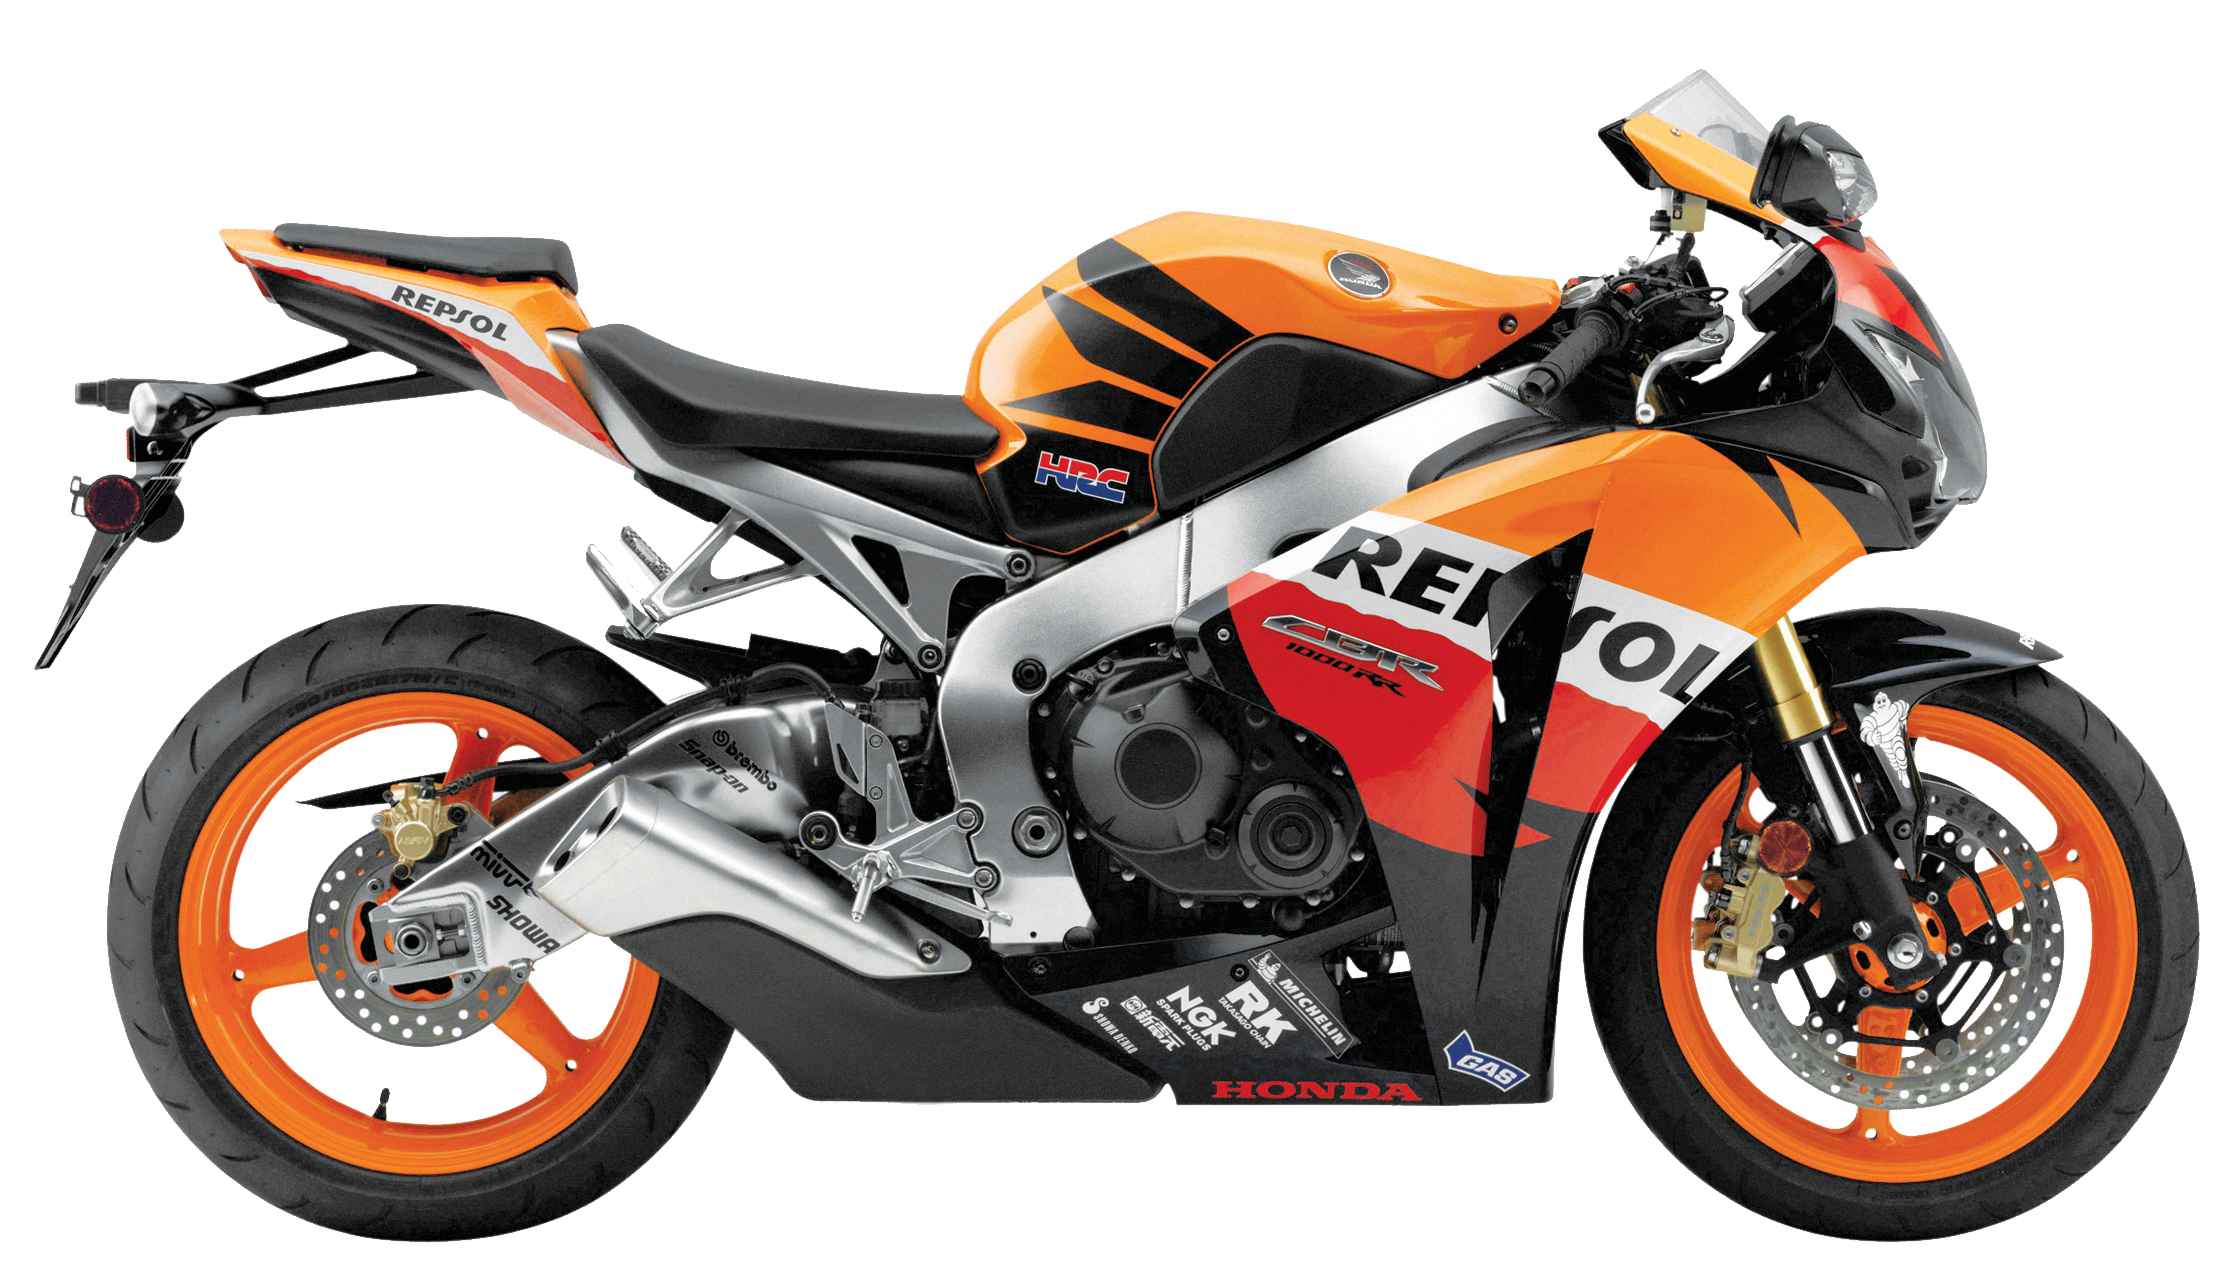 Motorcycle Png image #20335 - Motorcycle PNG